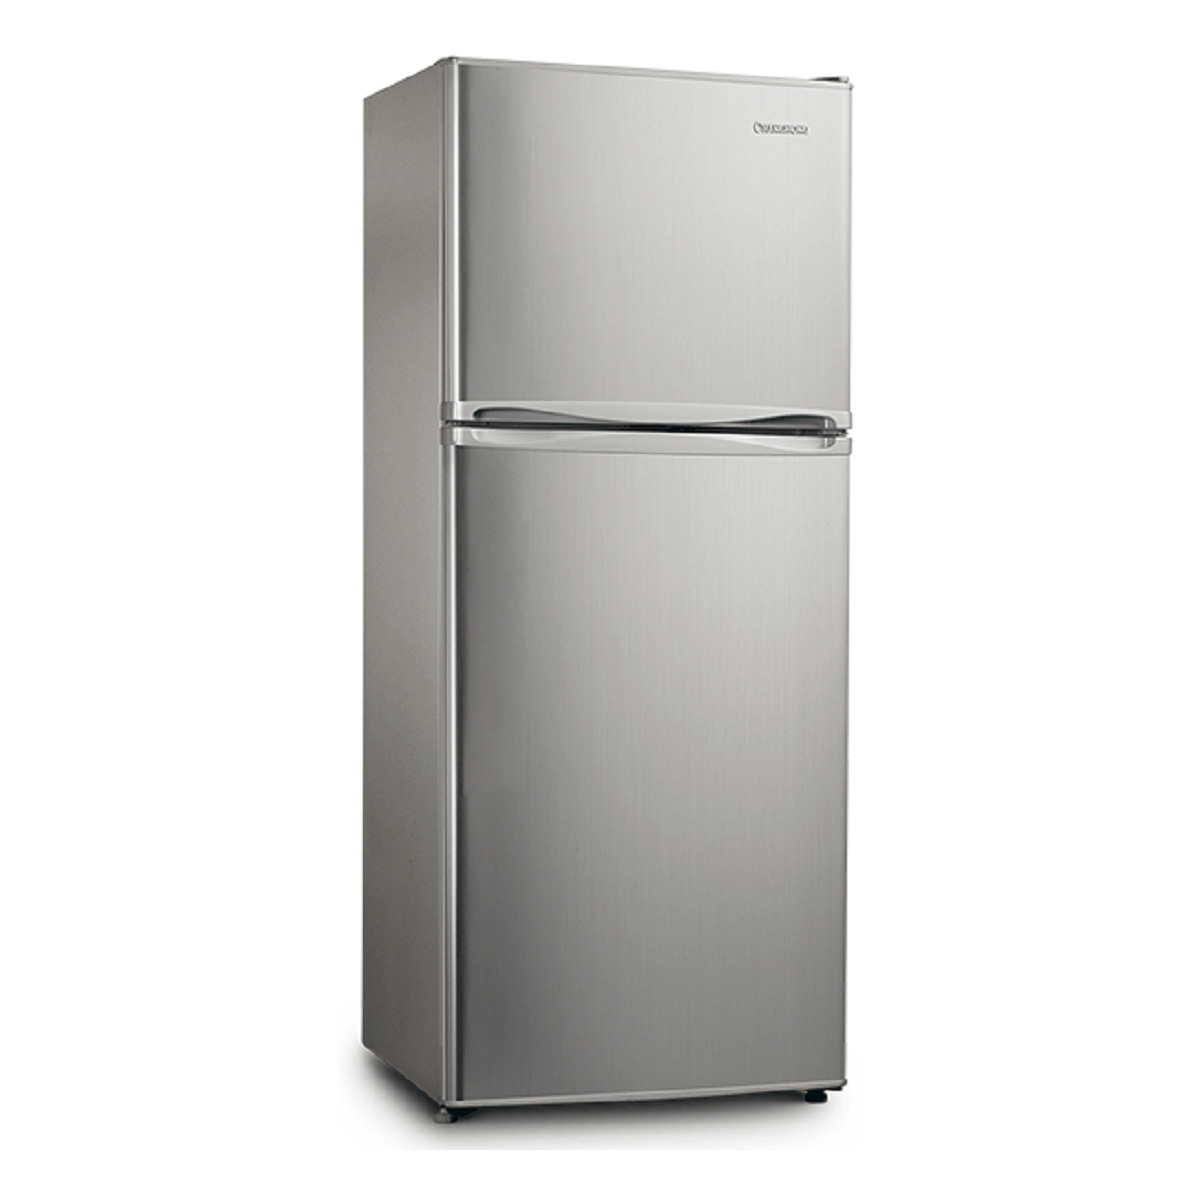 Changhong FTM418A01S 400L Top mount fridge